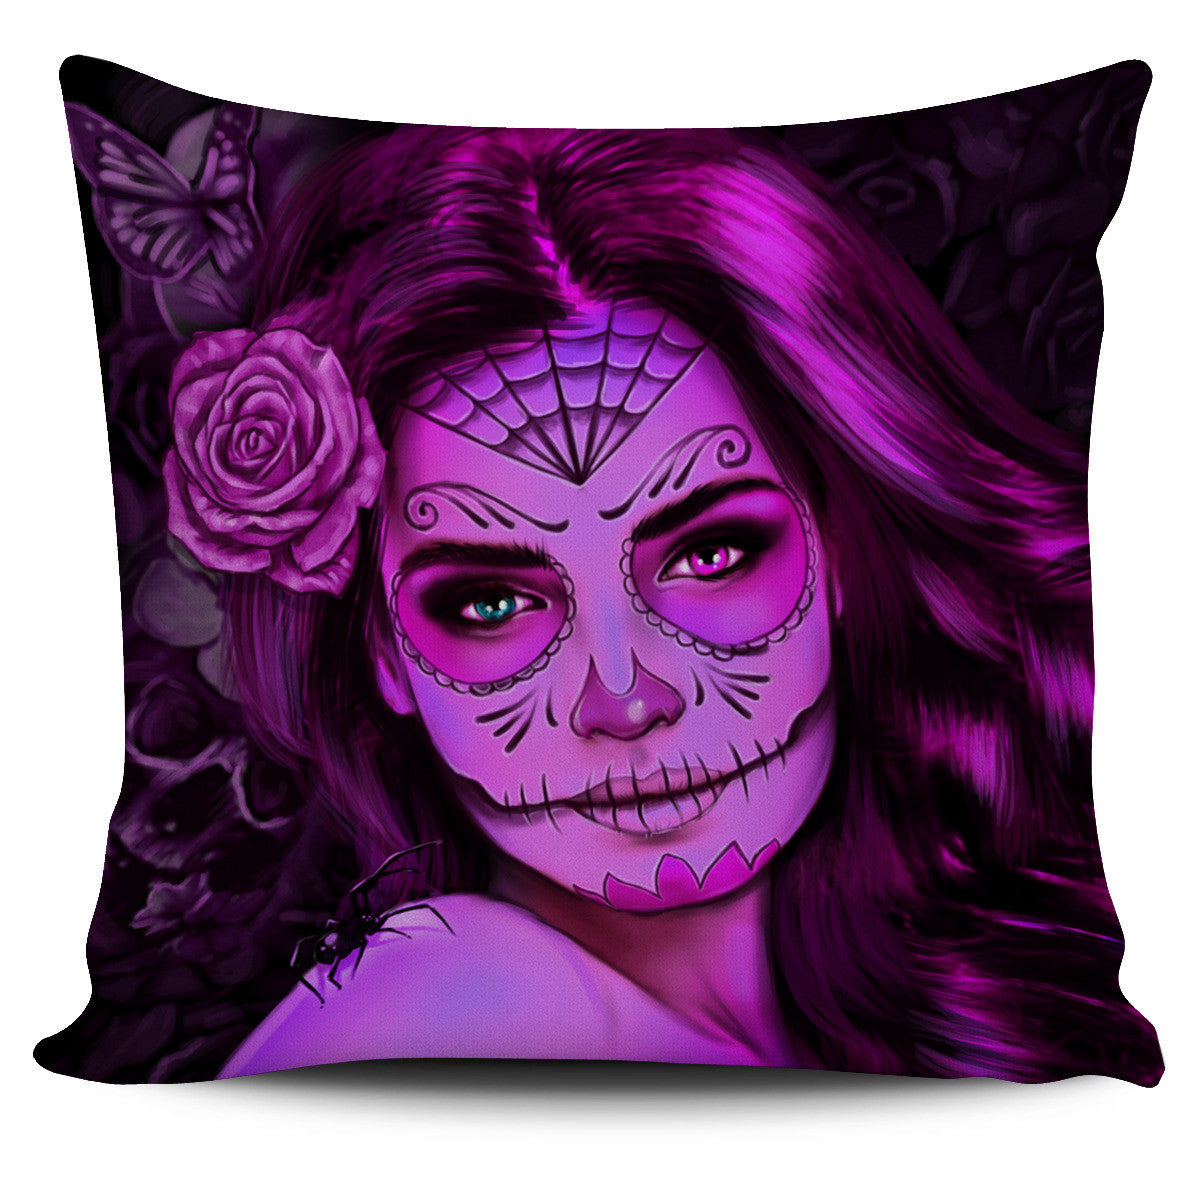 Pink Calavena Girl Pillow Cover